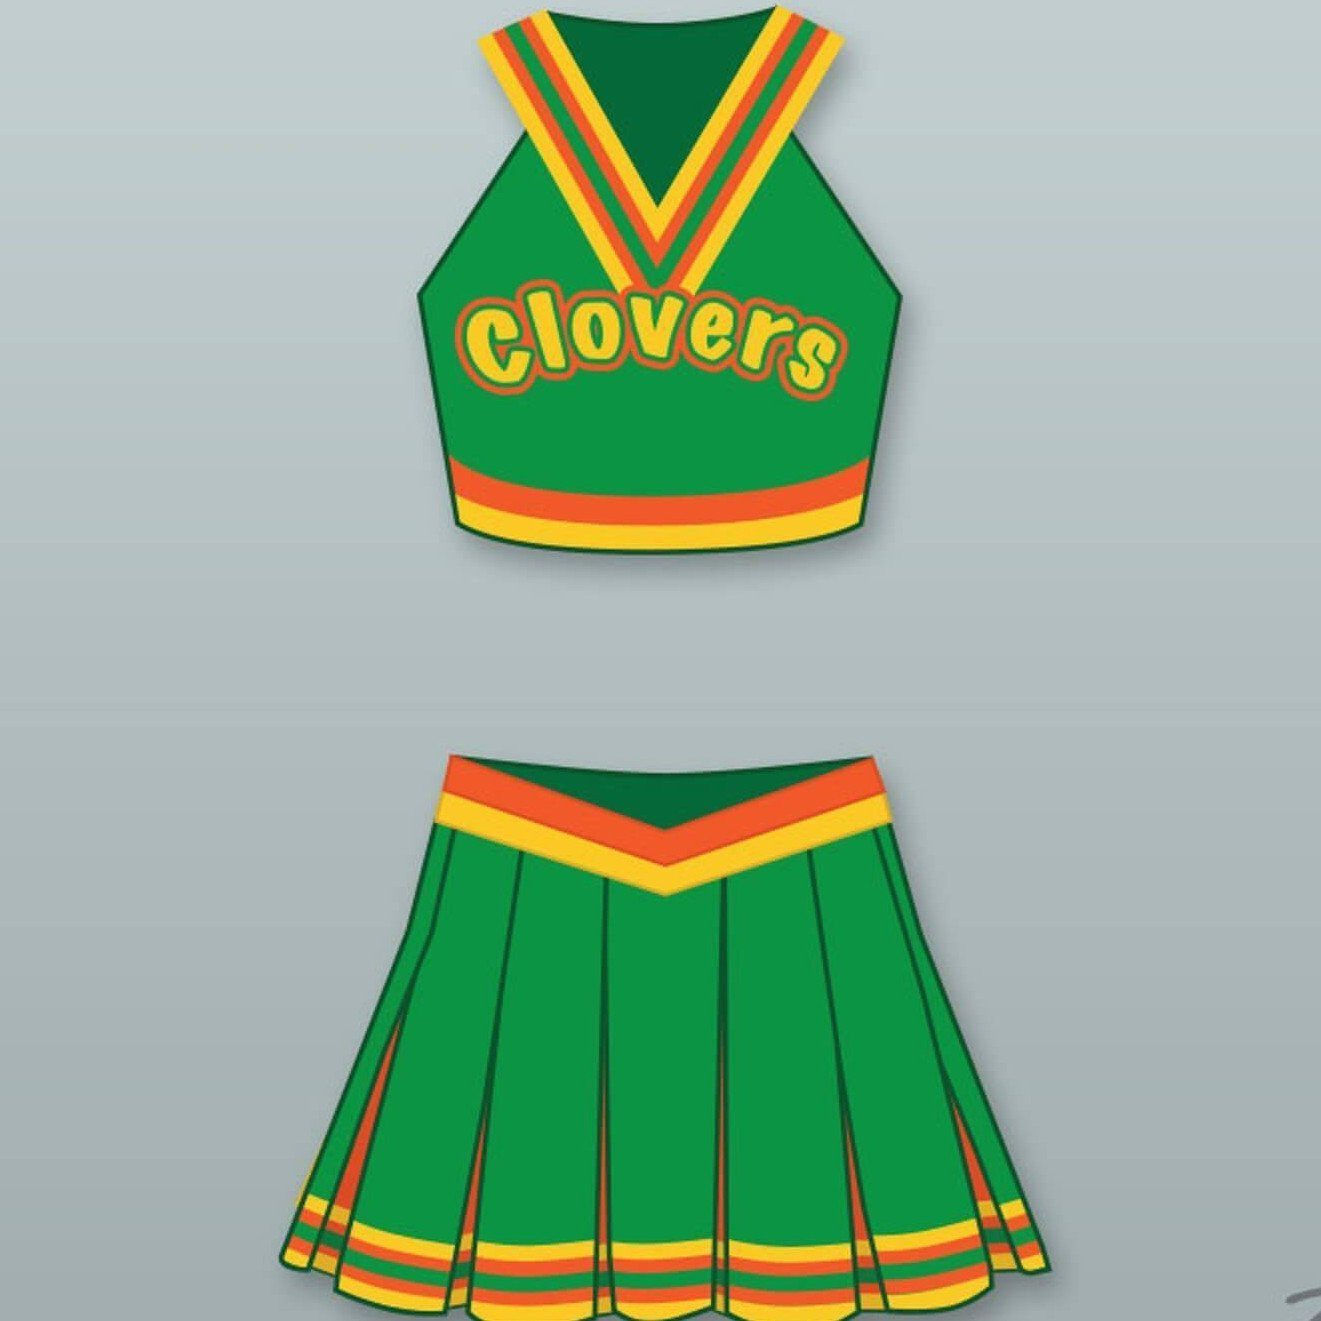 East Compton Clovers Cheerleader Uniform - Jersey Champs - Custom Basketball, Baseball, Football & Hockey Jerseys